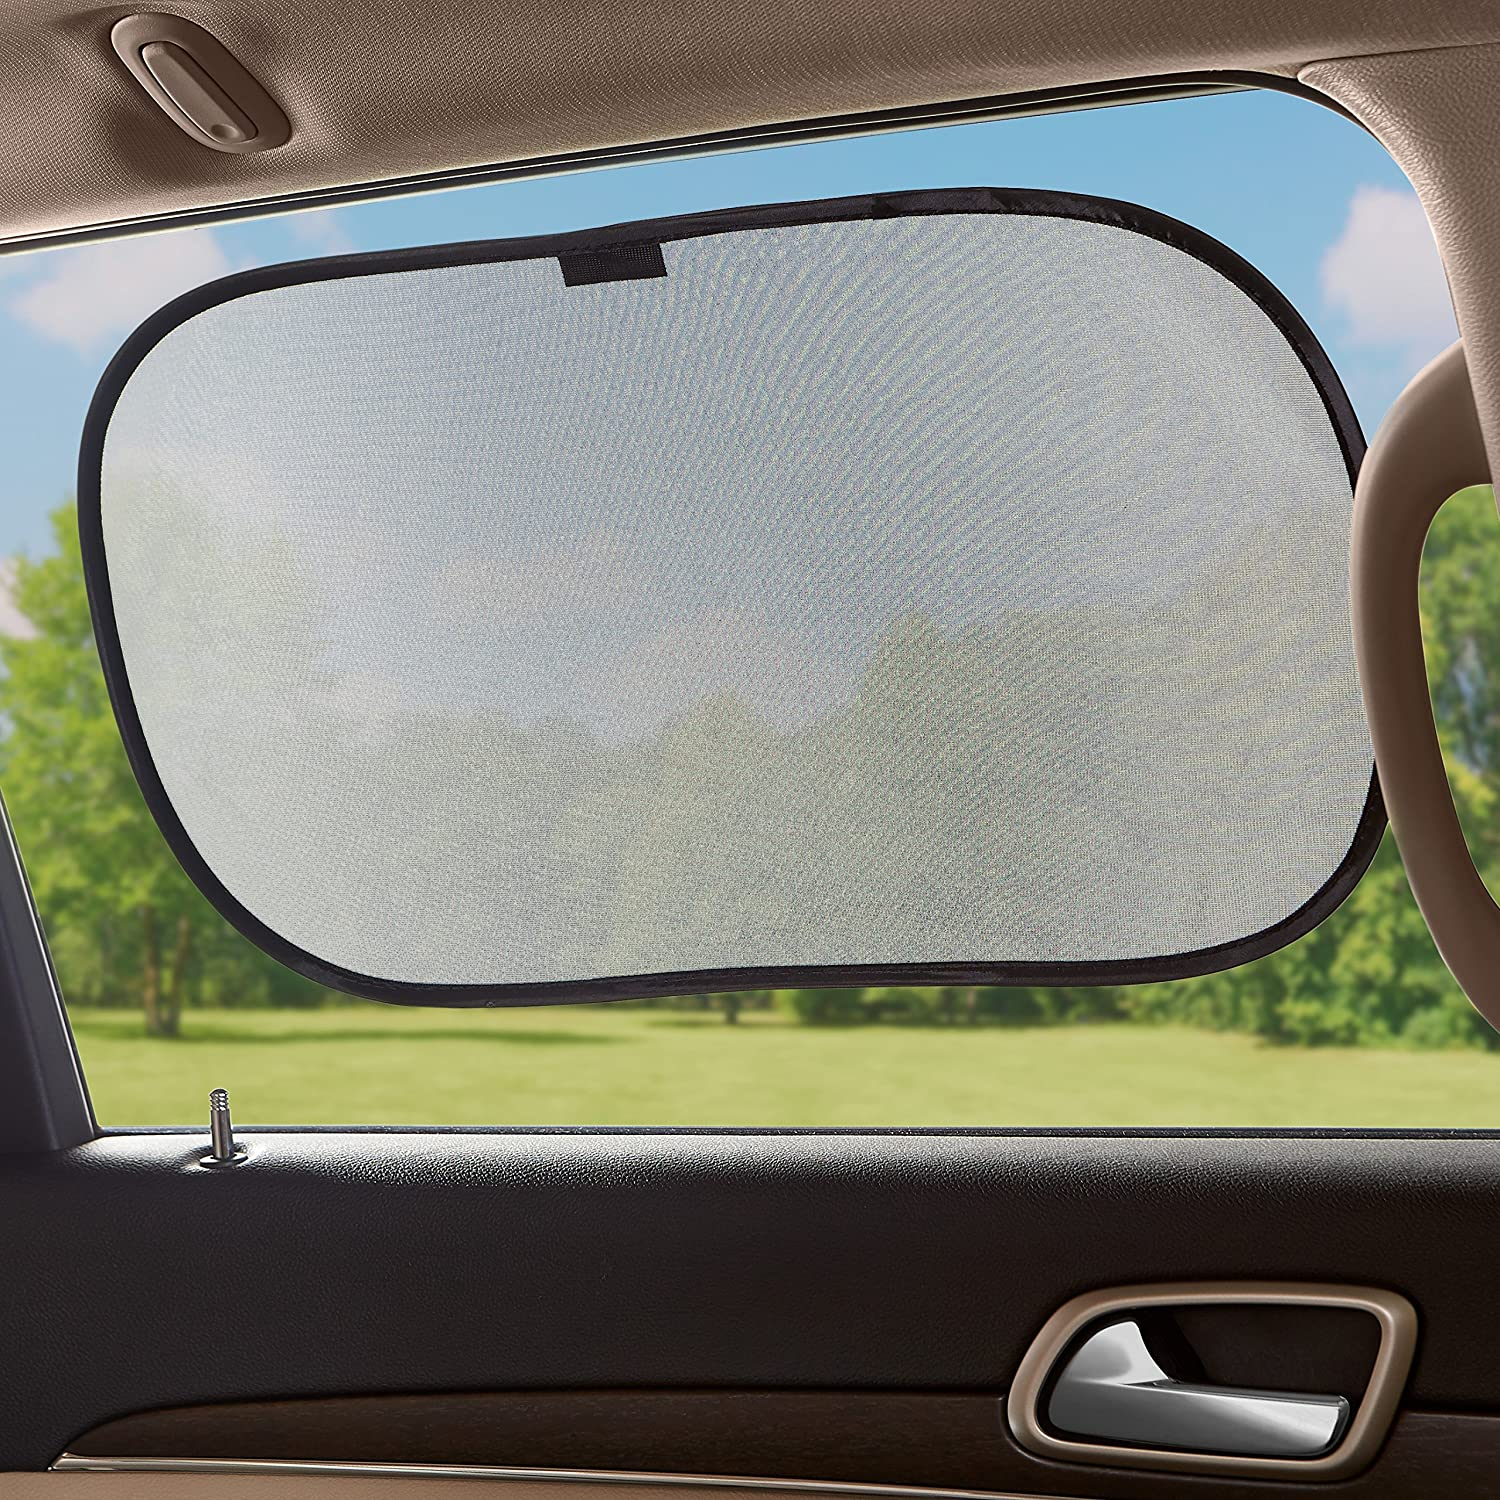 3-Piece Set Basics Car Window Stick-On Sun Shade for Rear and Side Windows